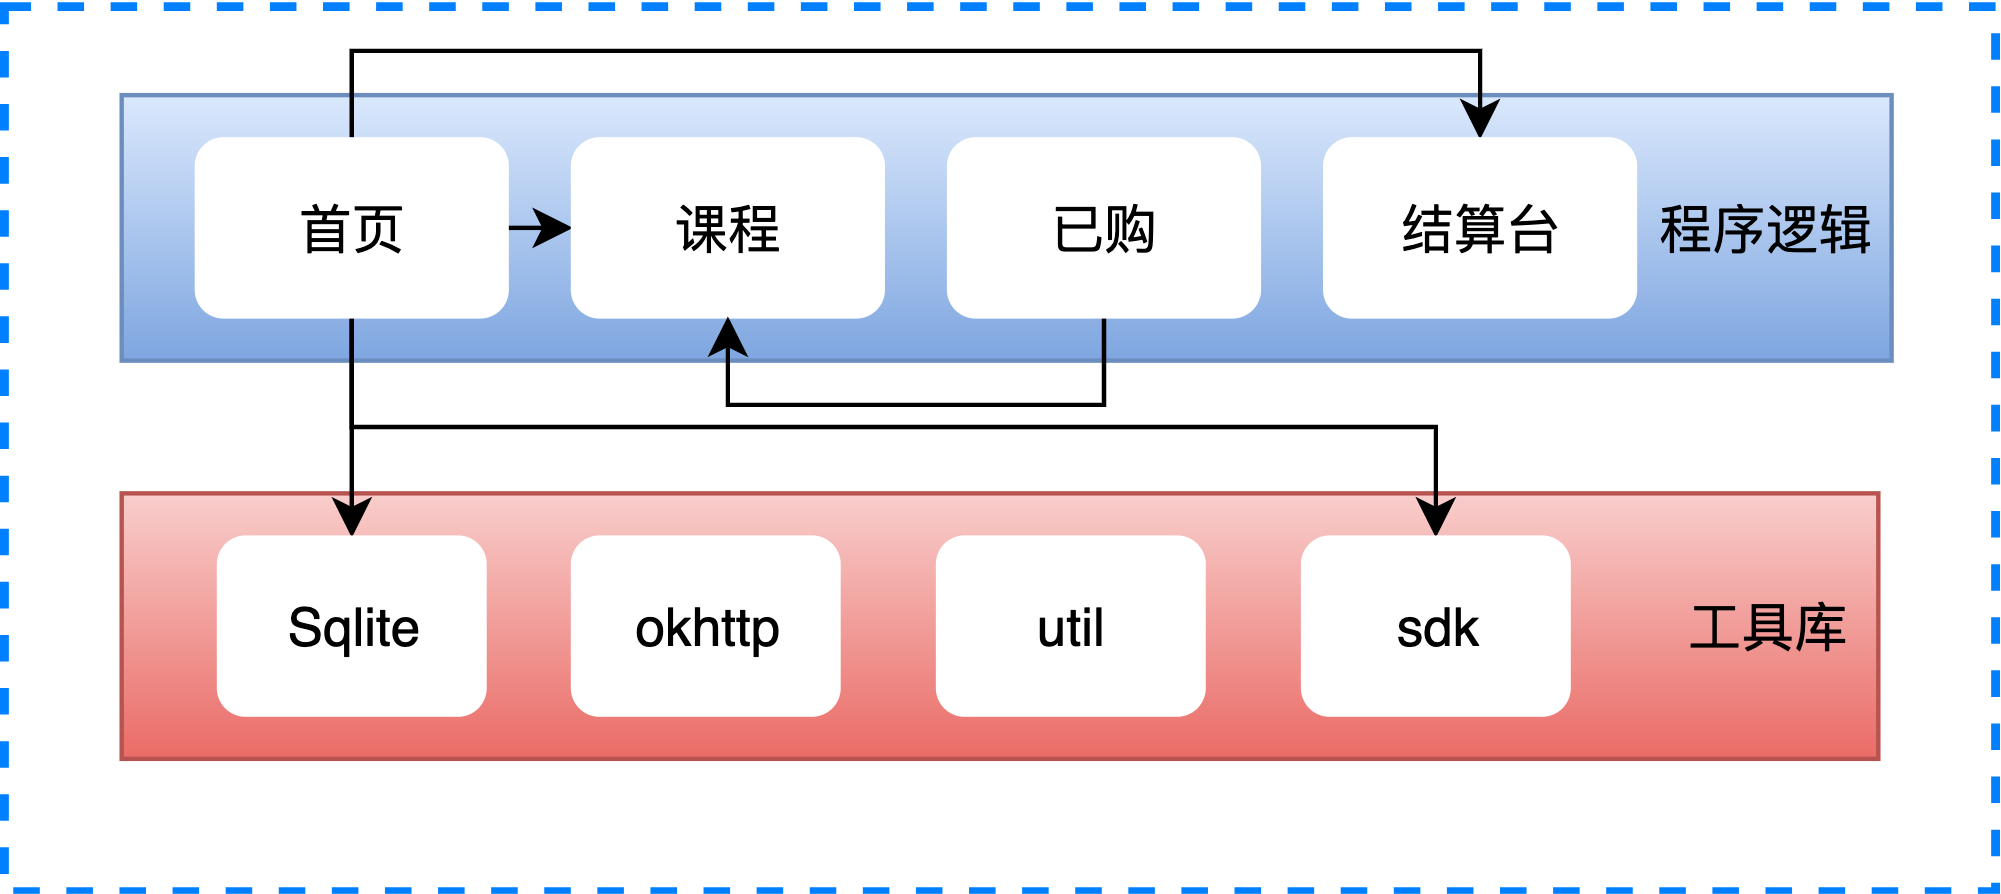 Untitled Diagram (23).png